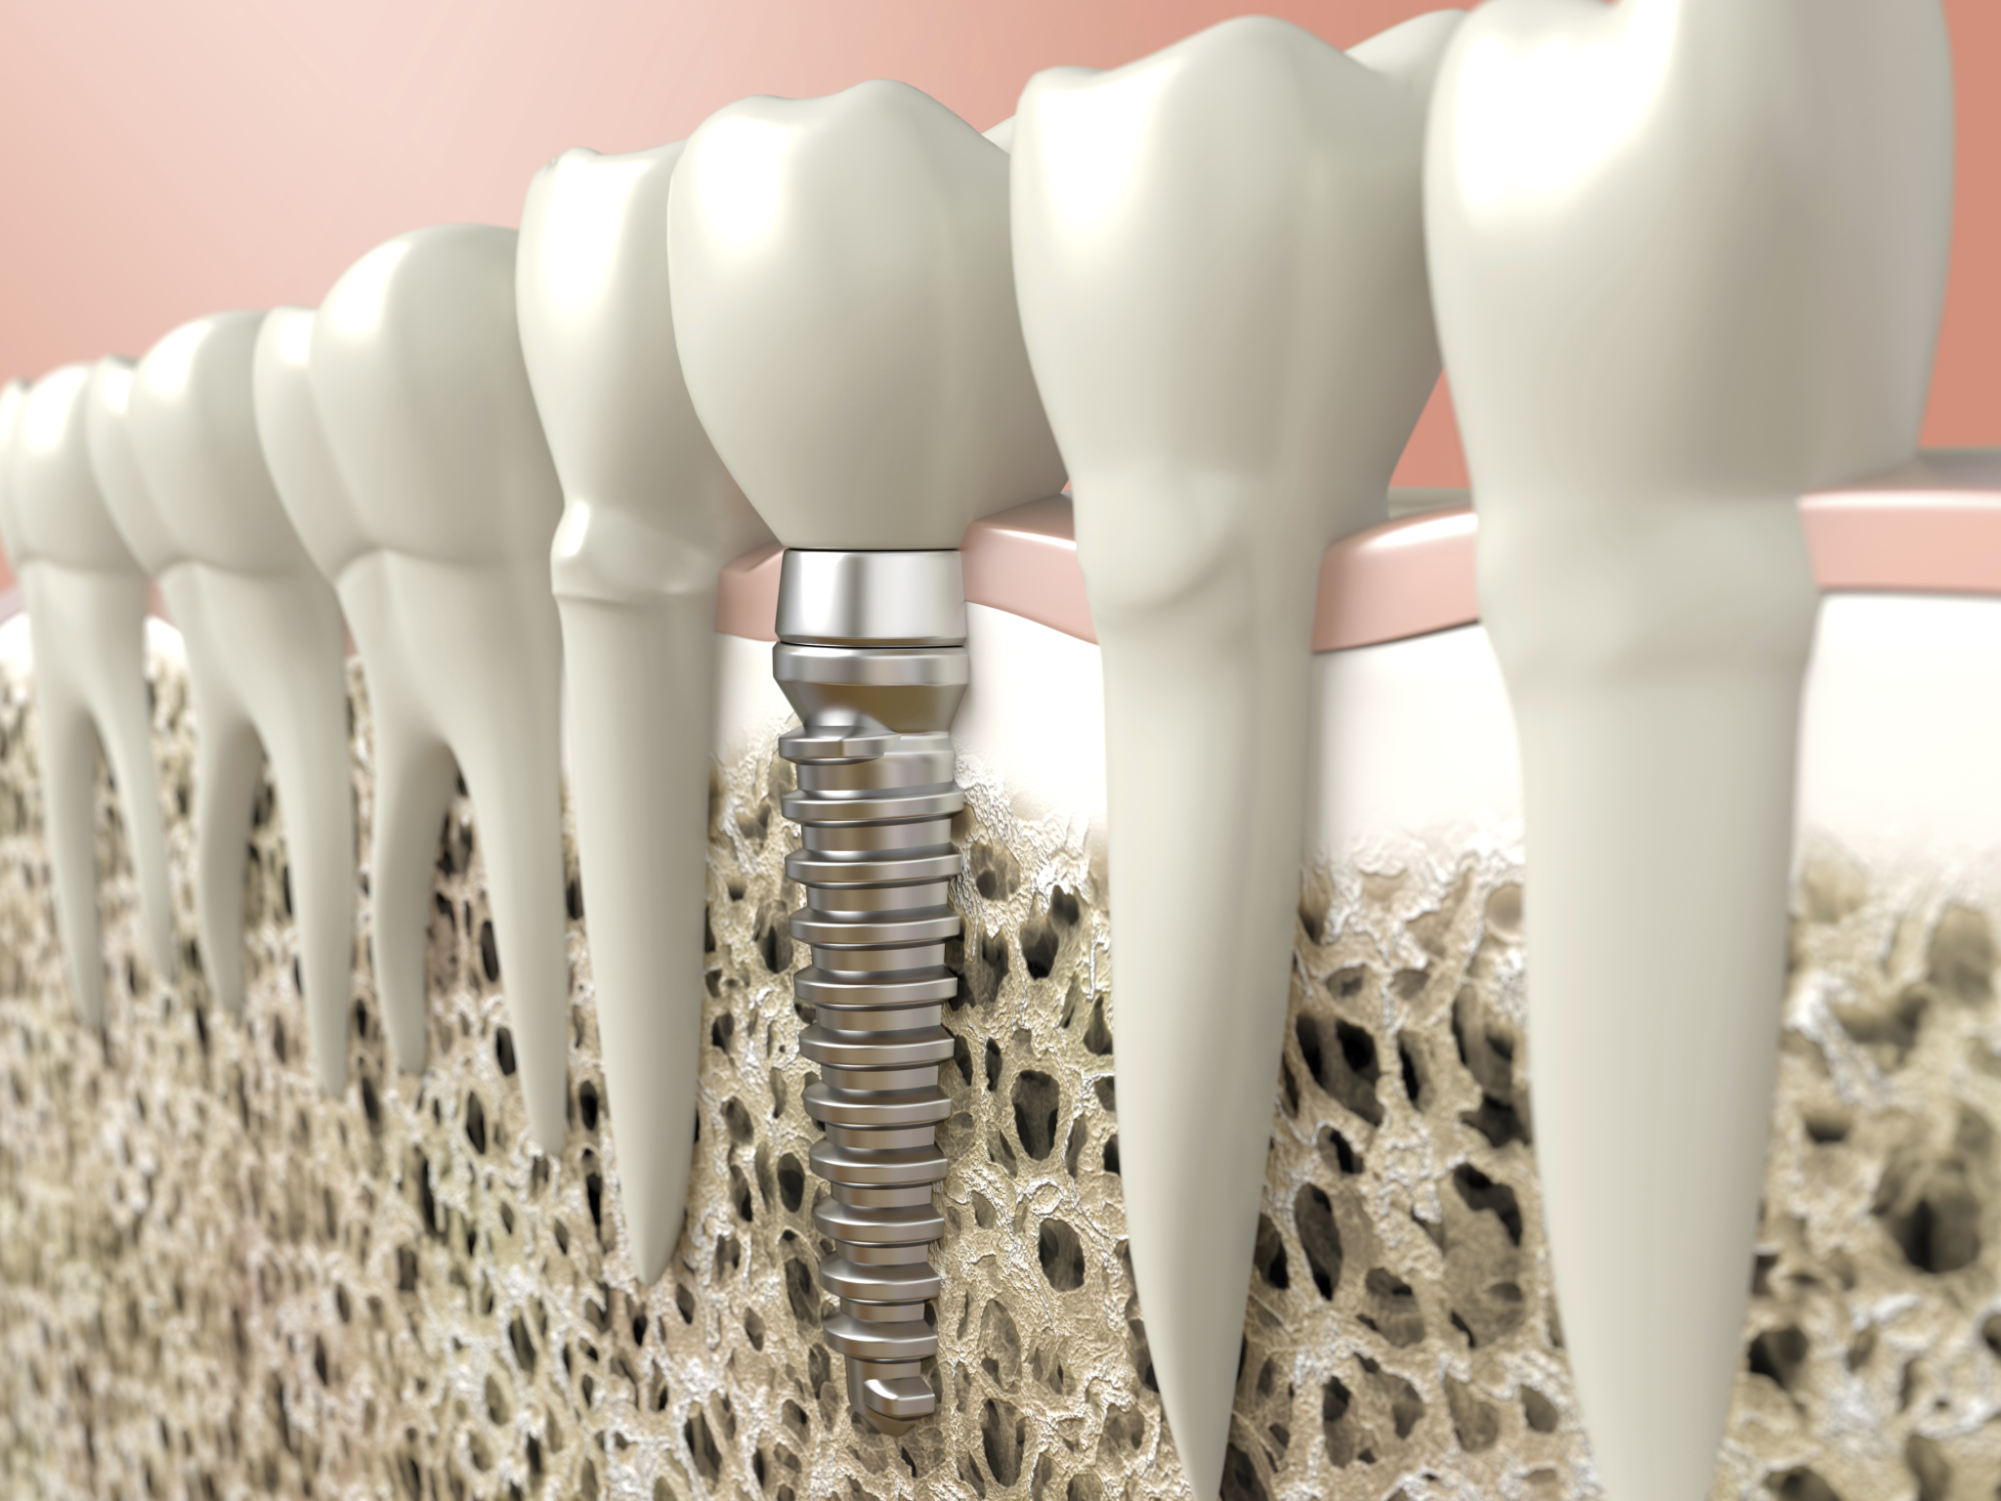 For A Dental Implant Owasso Ok Residents Turn To Drake Voto Jason D Voto Dds Family And Cosmetic Family Dentistry